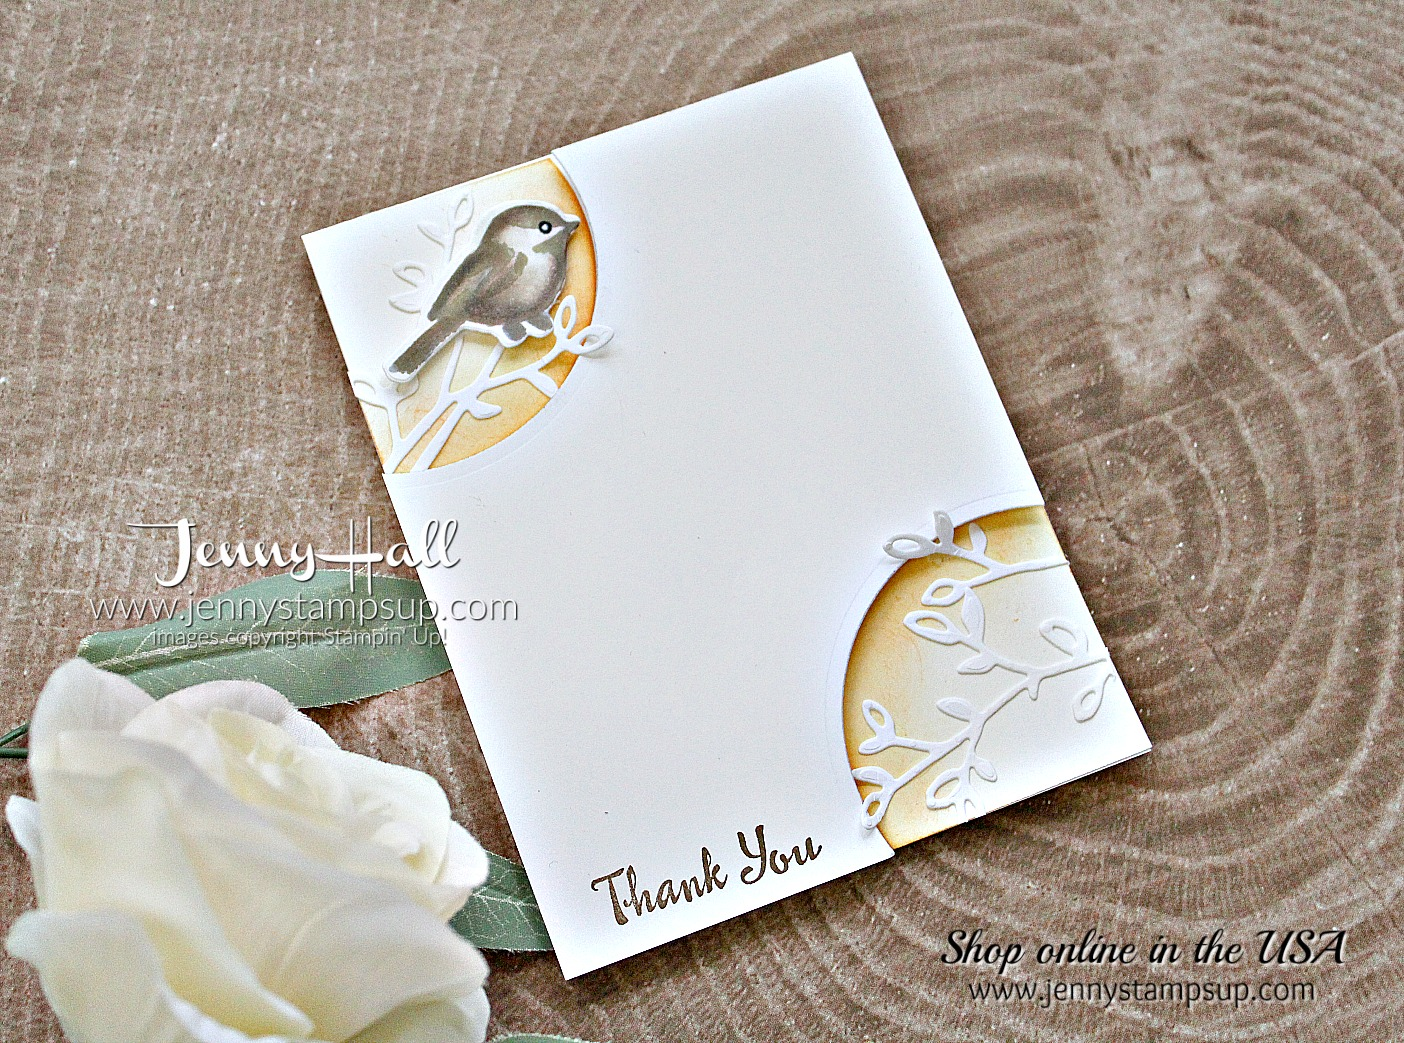 Morning Sun Petal Palette card by Jenny Hall at www.jennystampsup.com for #stampinup #cardmaking #cascards #cleanandsimplecards #jennystampsup #jennyhallstampinup #jennyhalldesign #cardmakingchallenge #cardmakingtechnique #videotutorial #cardmakingtechnique #scrapbooking and more!